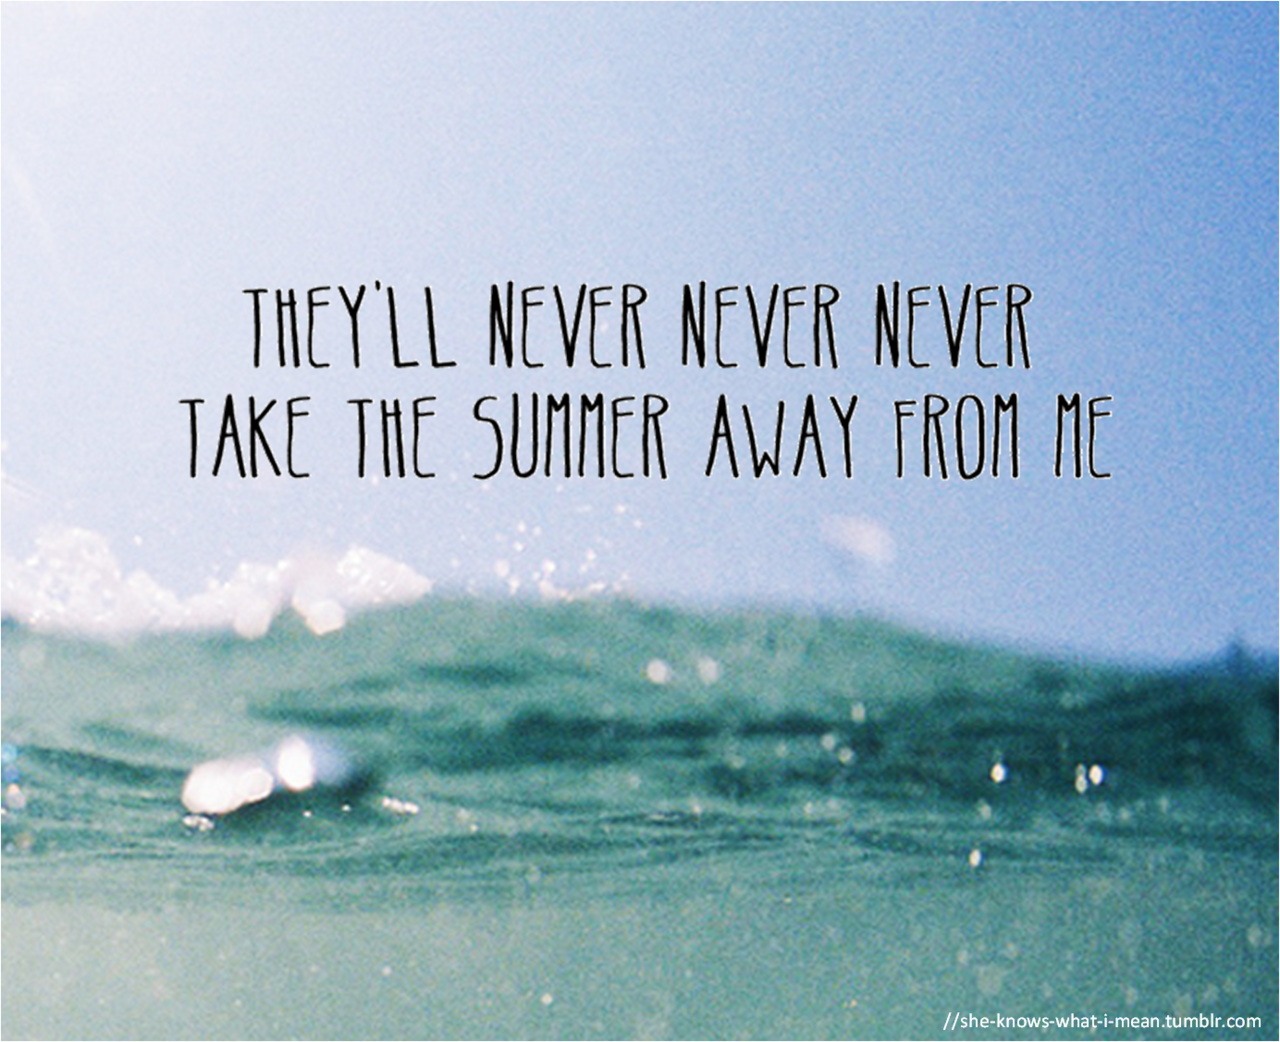 Cute Summer Beach Quotes Quotesgram. Summer Quotes In French. Mom Quotes Life. Girl Quotes.com. Short Quotes Job Well Done. Hurt Quotes In Tamil. Ex Boyfriend Jealous Quotes. Marriage Quotes Greetings. Tattoo Quotes Latin